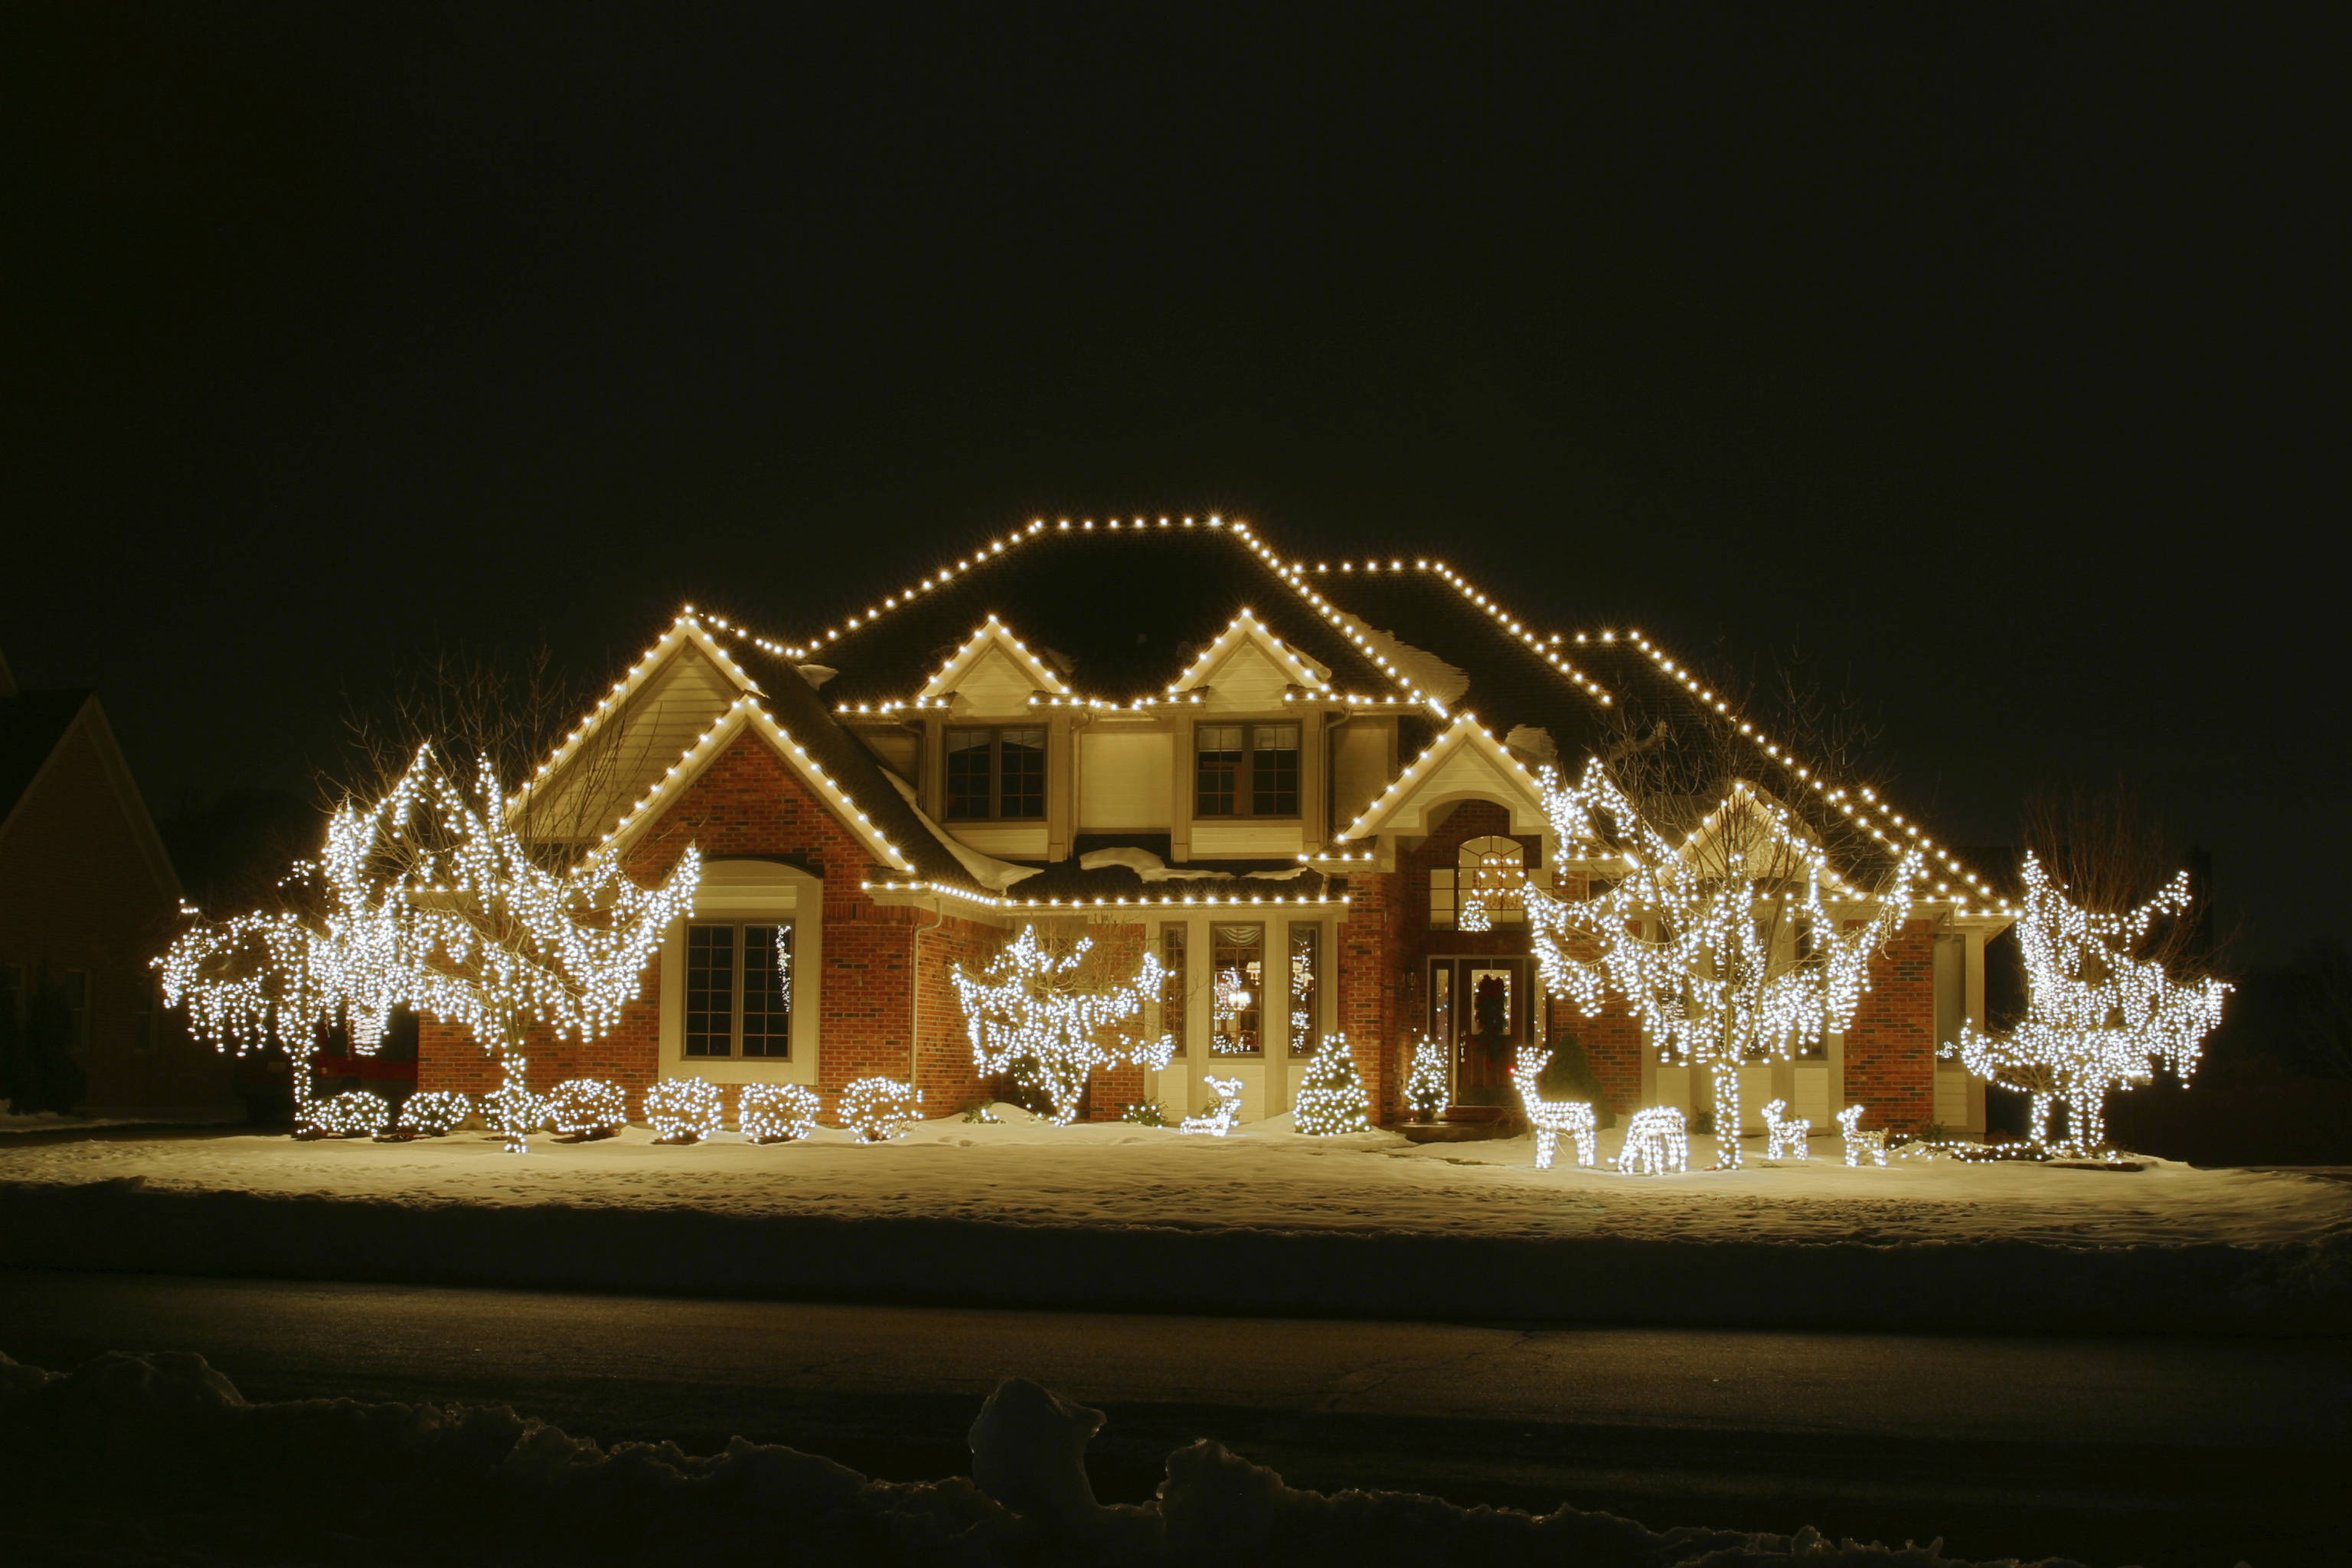 Professional Christmas Lighting in Asheville & Holiday Lighting in Asheville is Best When You Start at the Top ...